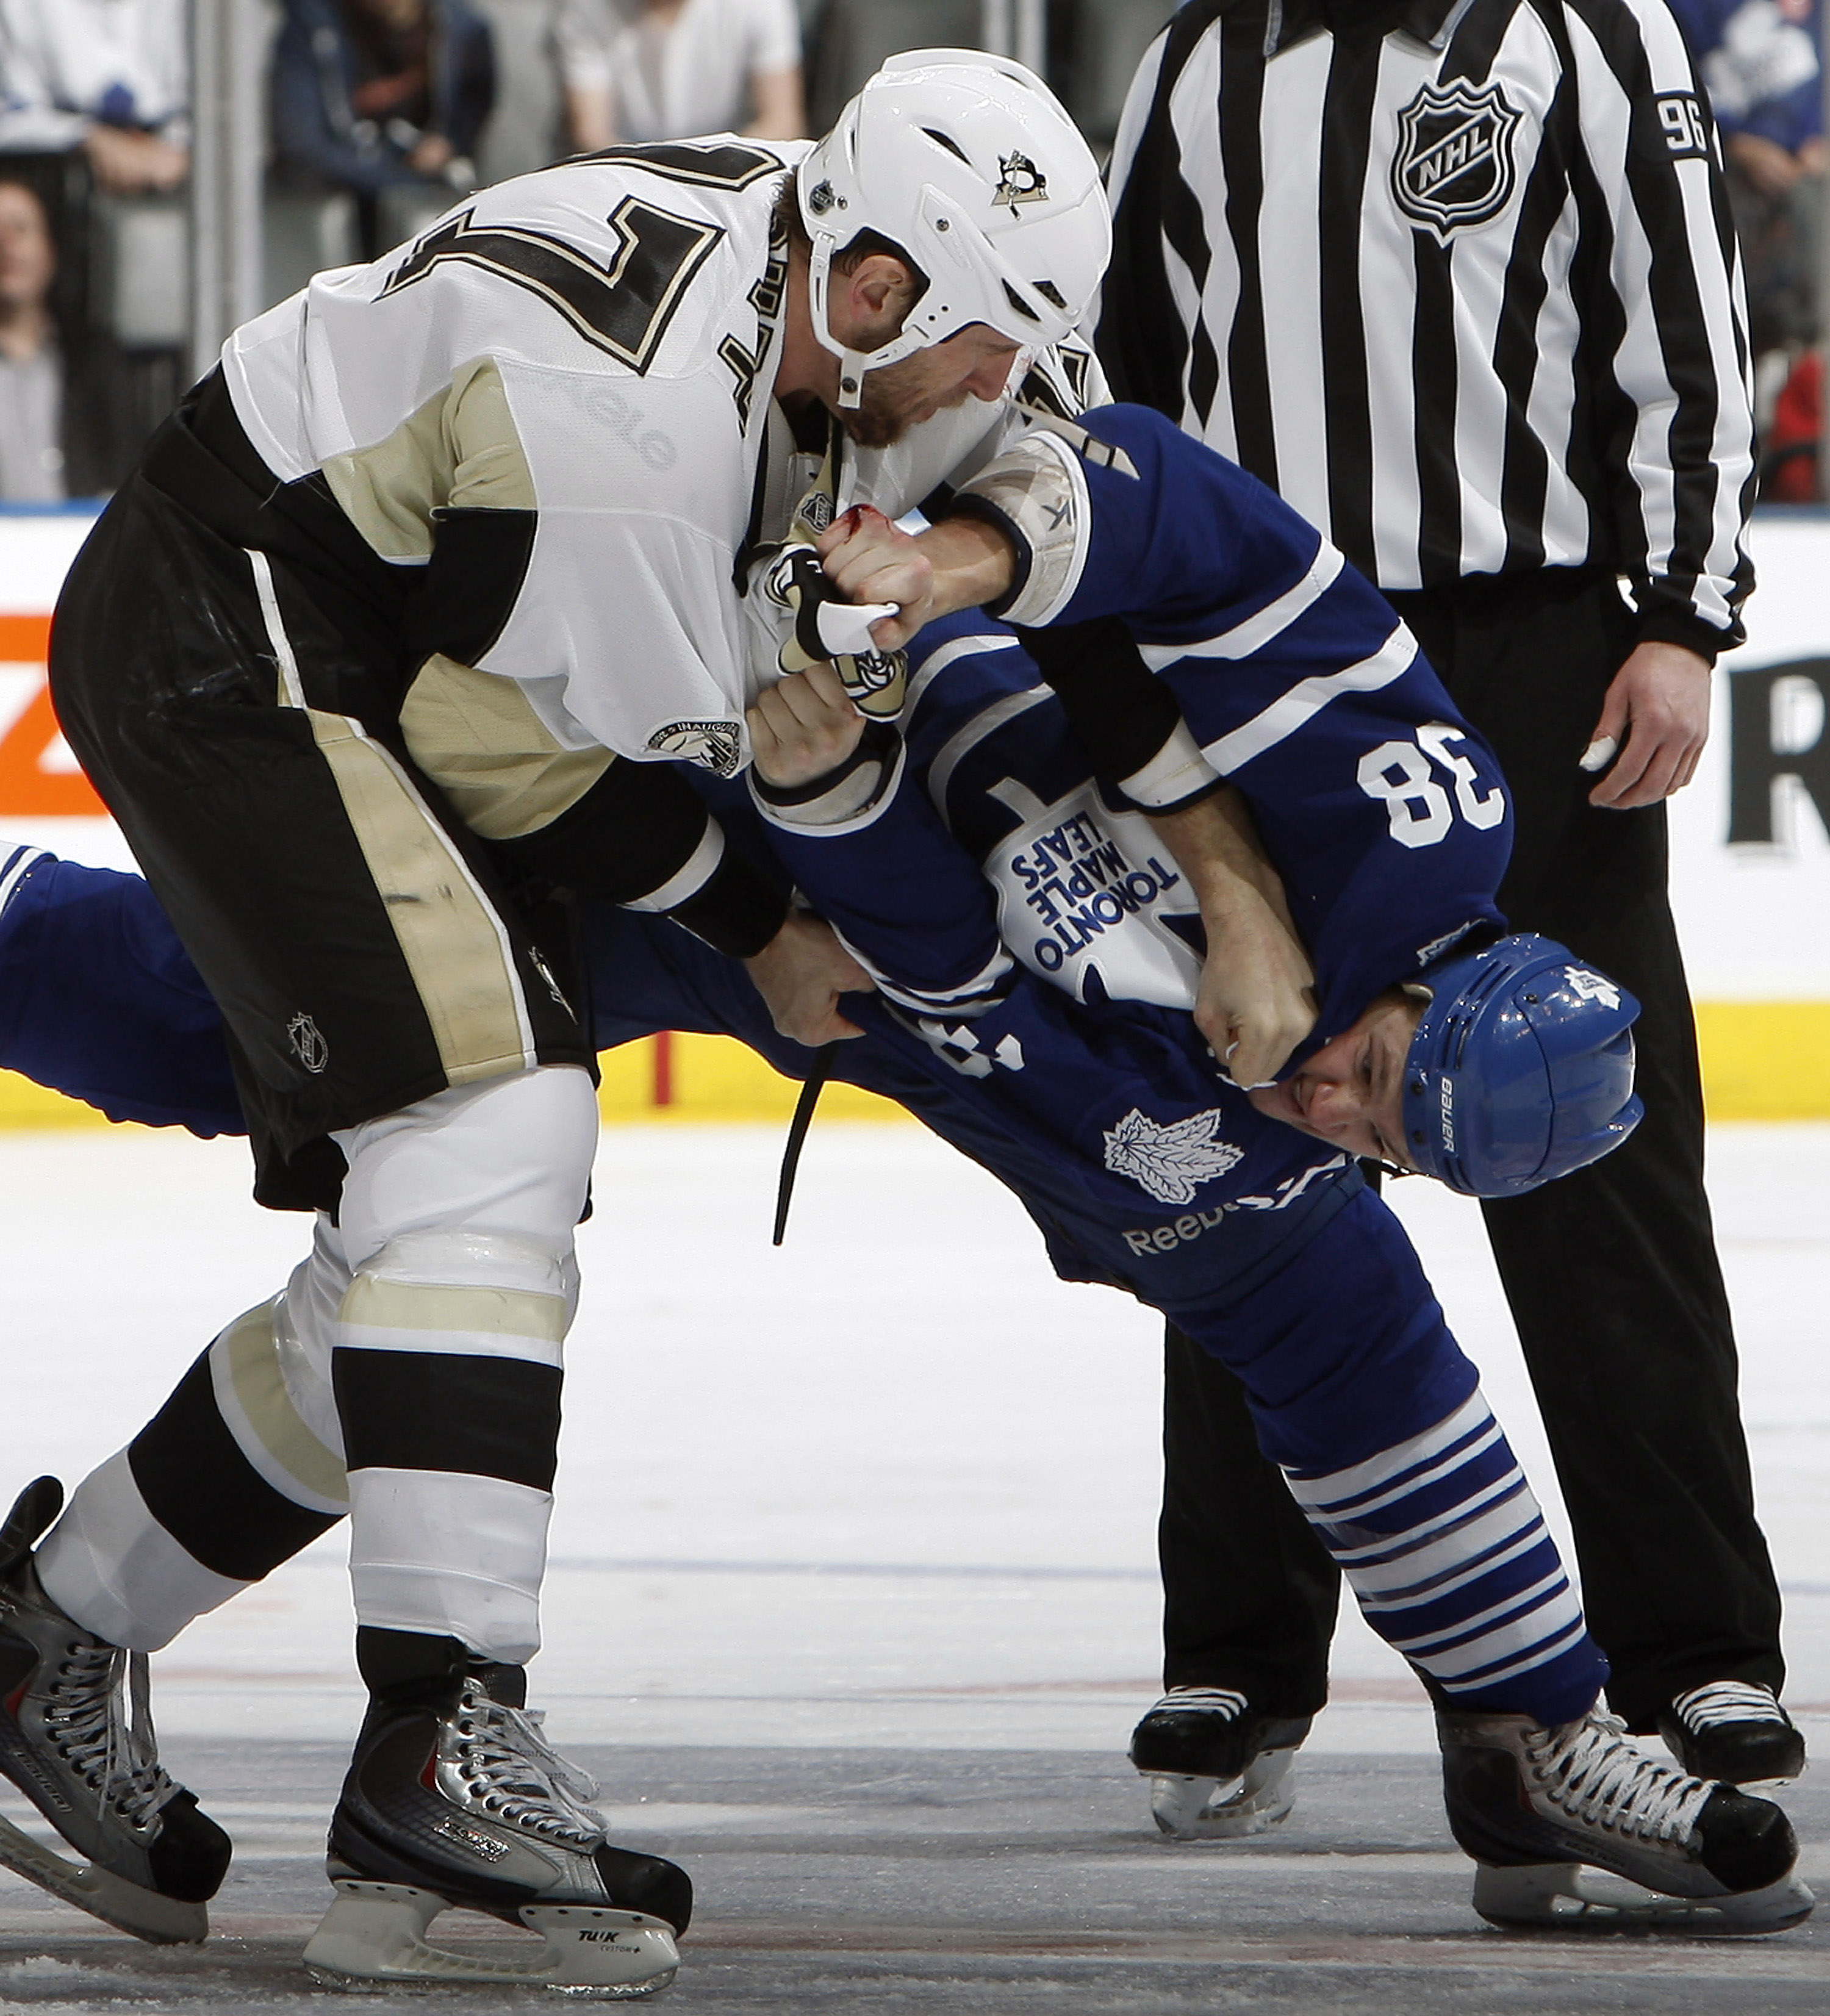 TORONTO, CANADA - FEBRUARY 26: Jay Rosehill #38 of the Toronto Maple Leafs fights Mike Rupp #17 of the Pittsburgh Penguins during game action at the Air Canada Centre February 26, 2011 in Toronto, Ontario, Canada. (Photo by Abelimages/Getty Images)